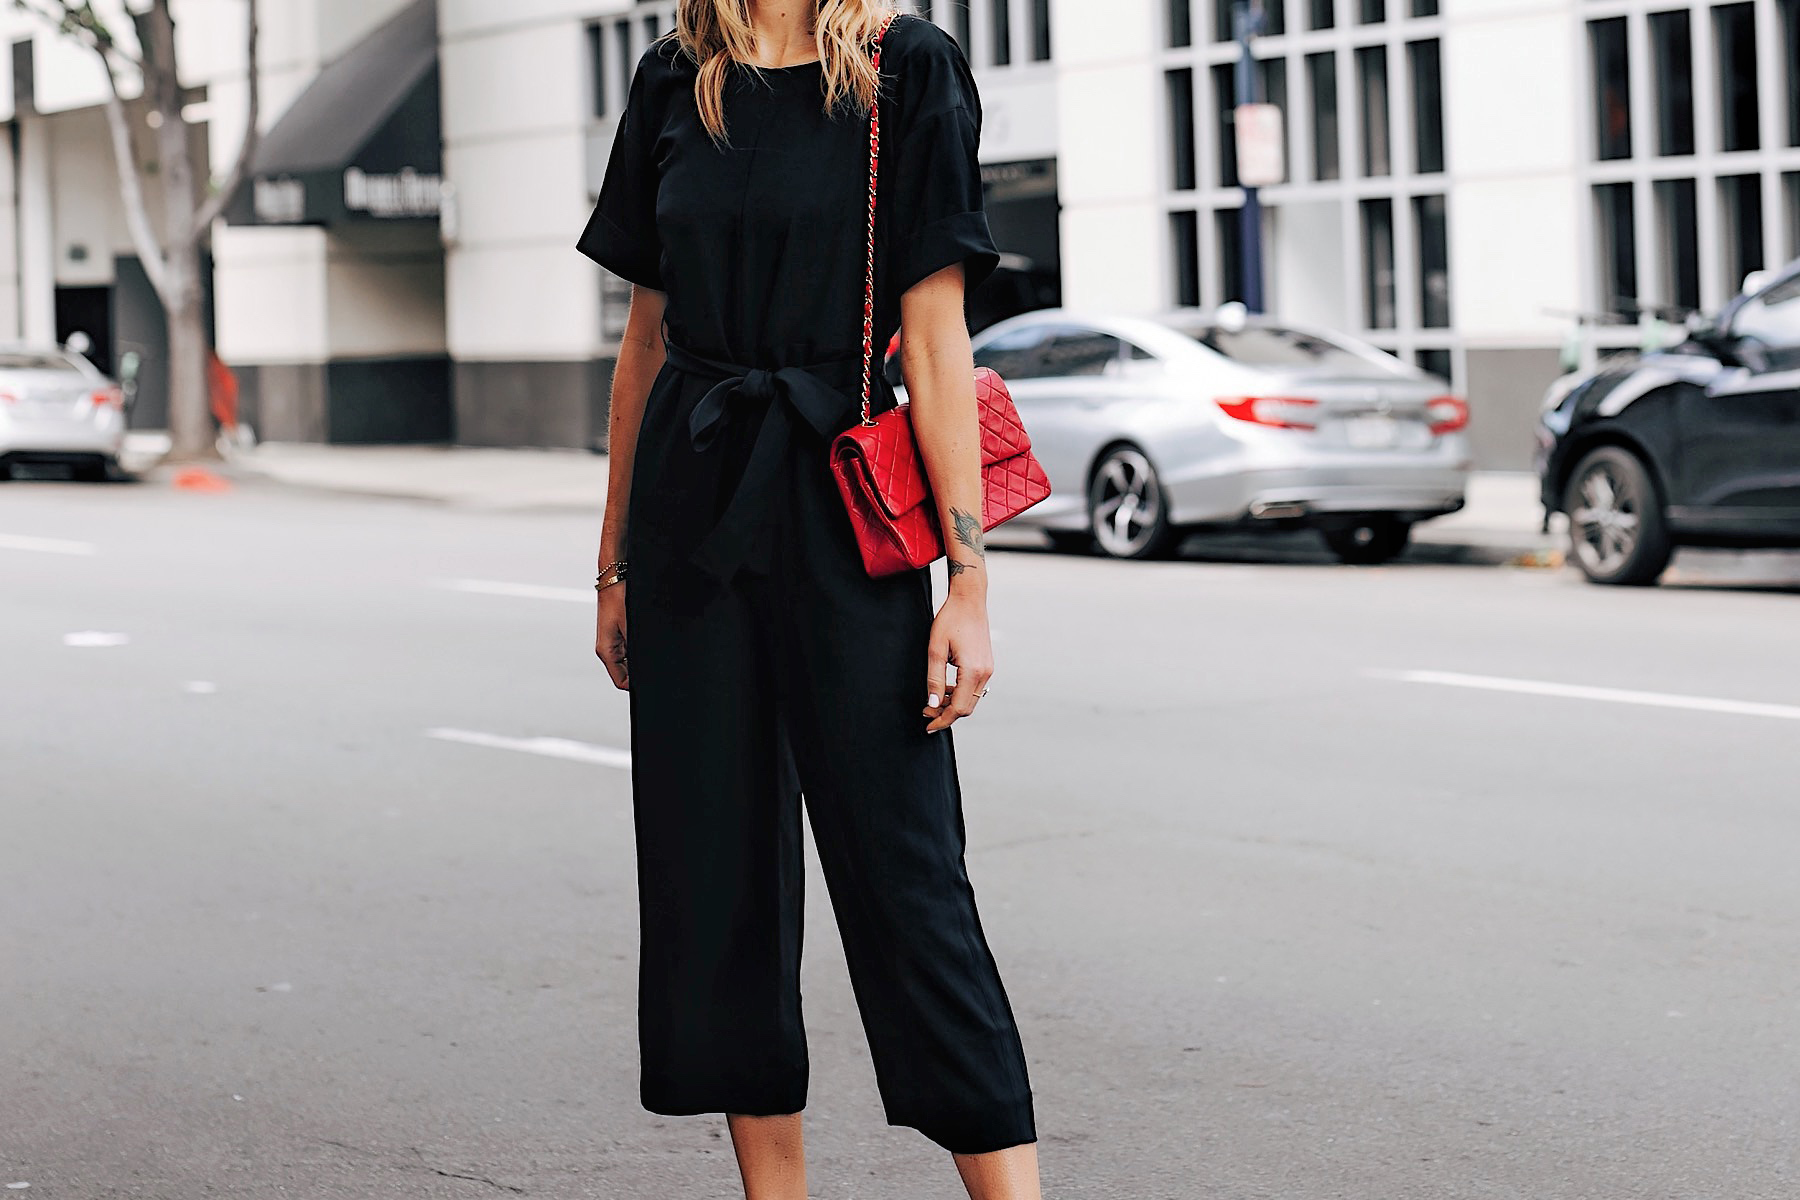 Blonde Woman Wearing Everlane Black Jumpsuit Red Chanel Handbag Fashion Jackson San Diego Fashion Blogger Street Style